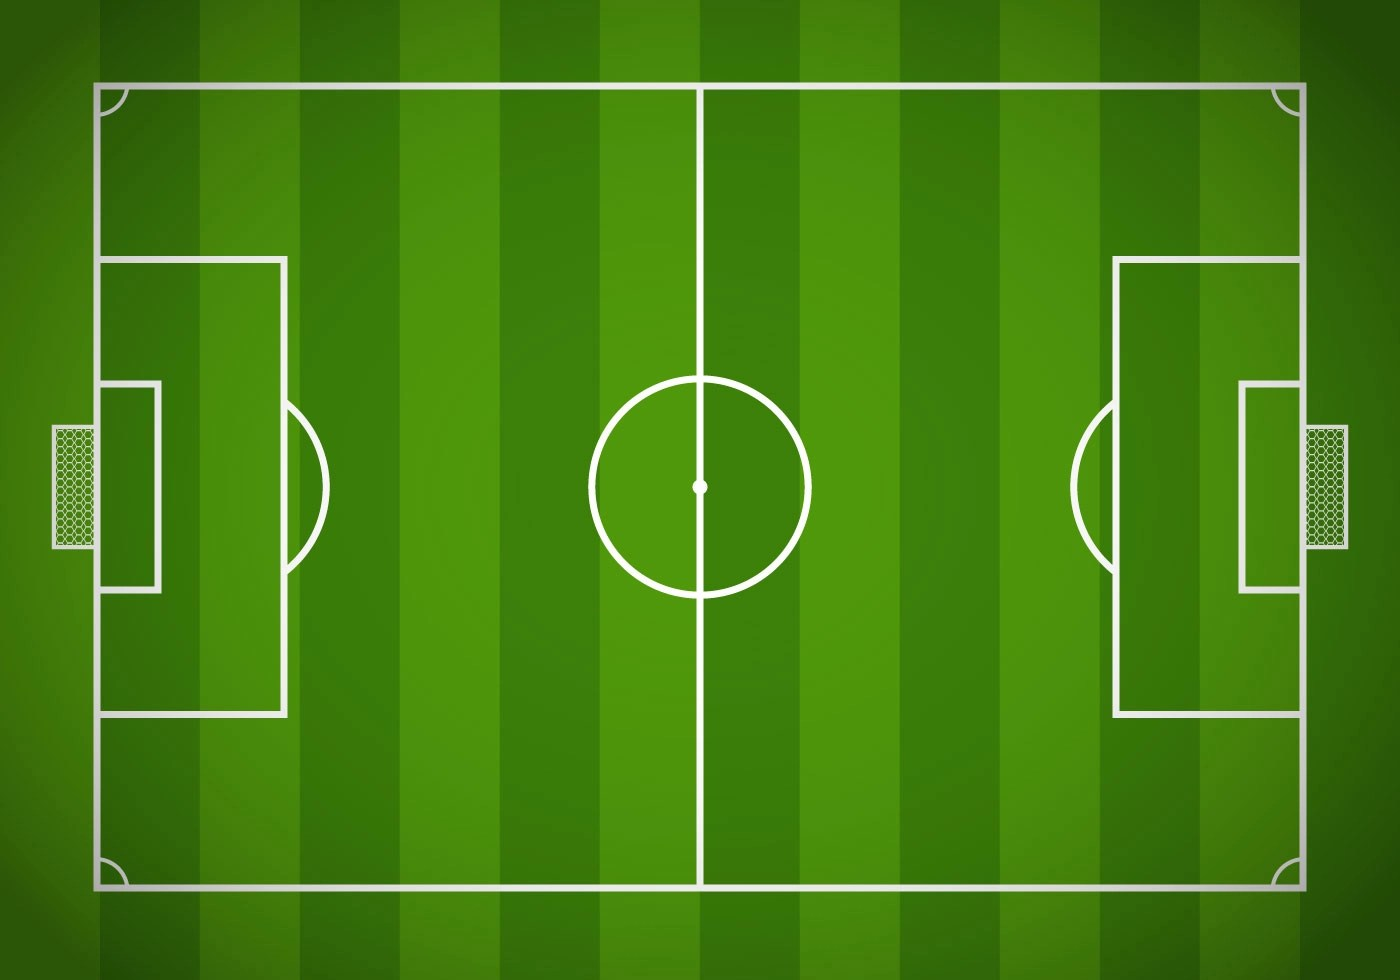 football pitch diagram to print cross pollination for kids free soccer field vector download art stock